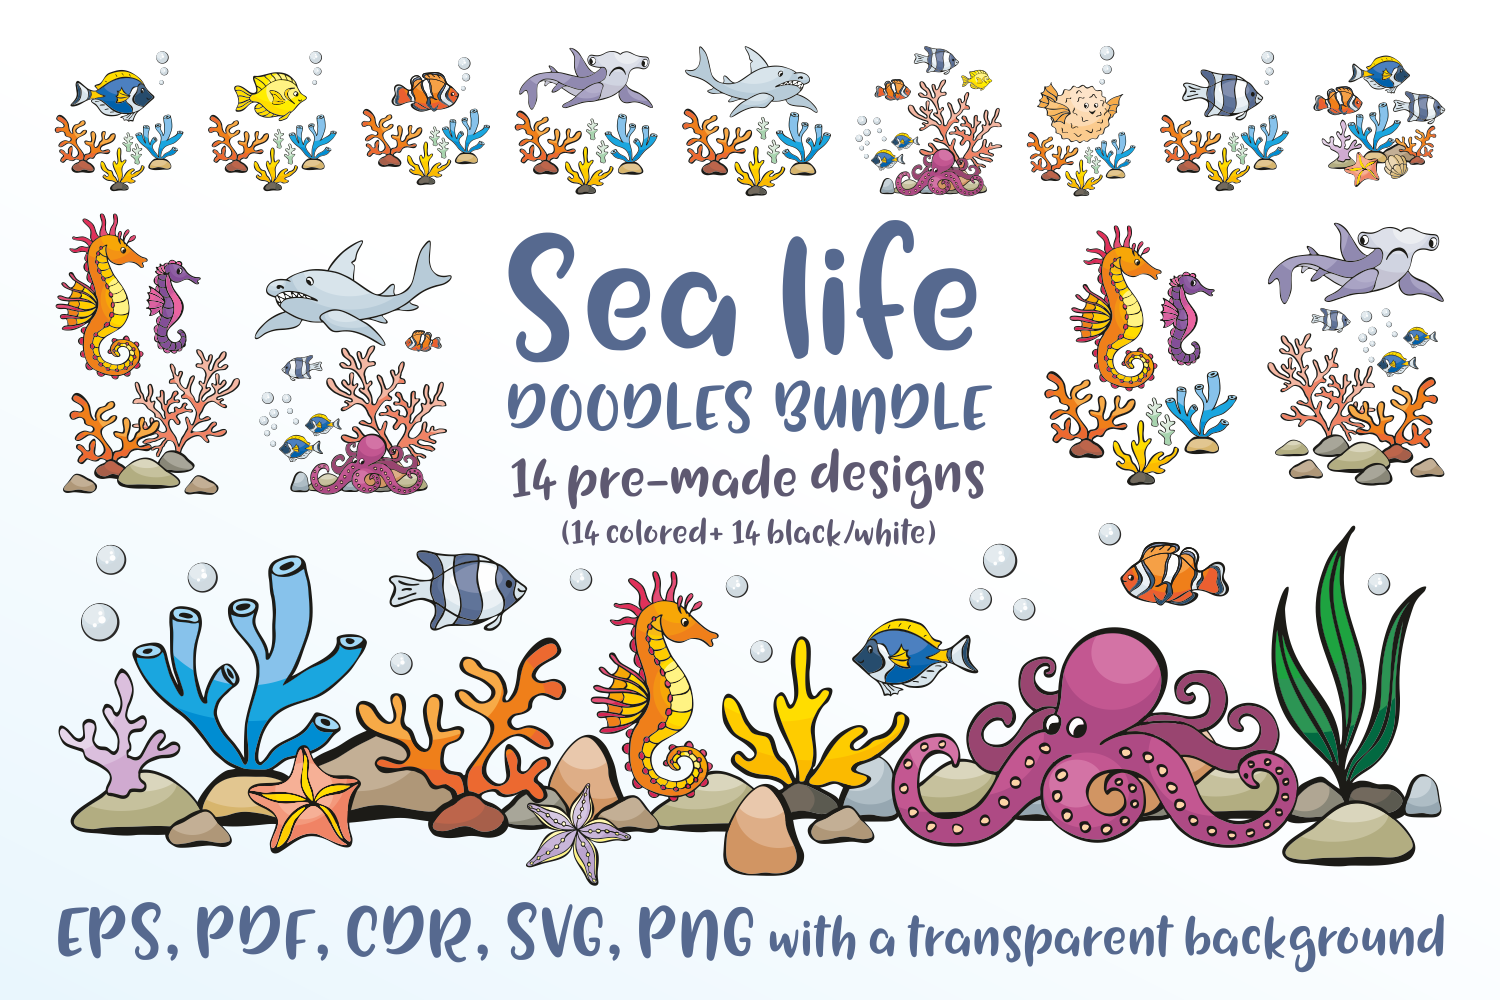 Download Free Sea Life Doodles Bundle Graphic By Olga Belova Creative Fabrica for Cricut Explore, Silhouette and other cutting machines.